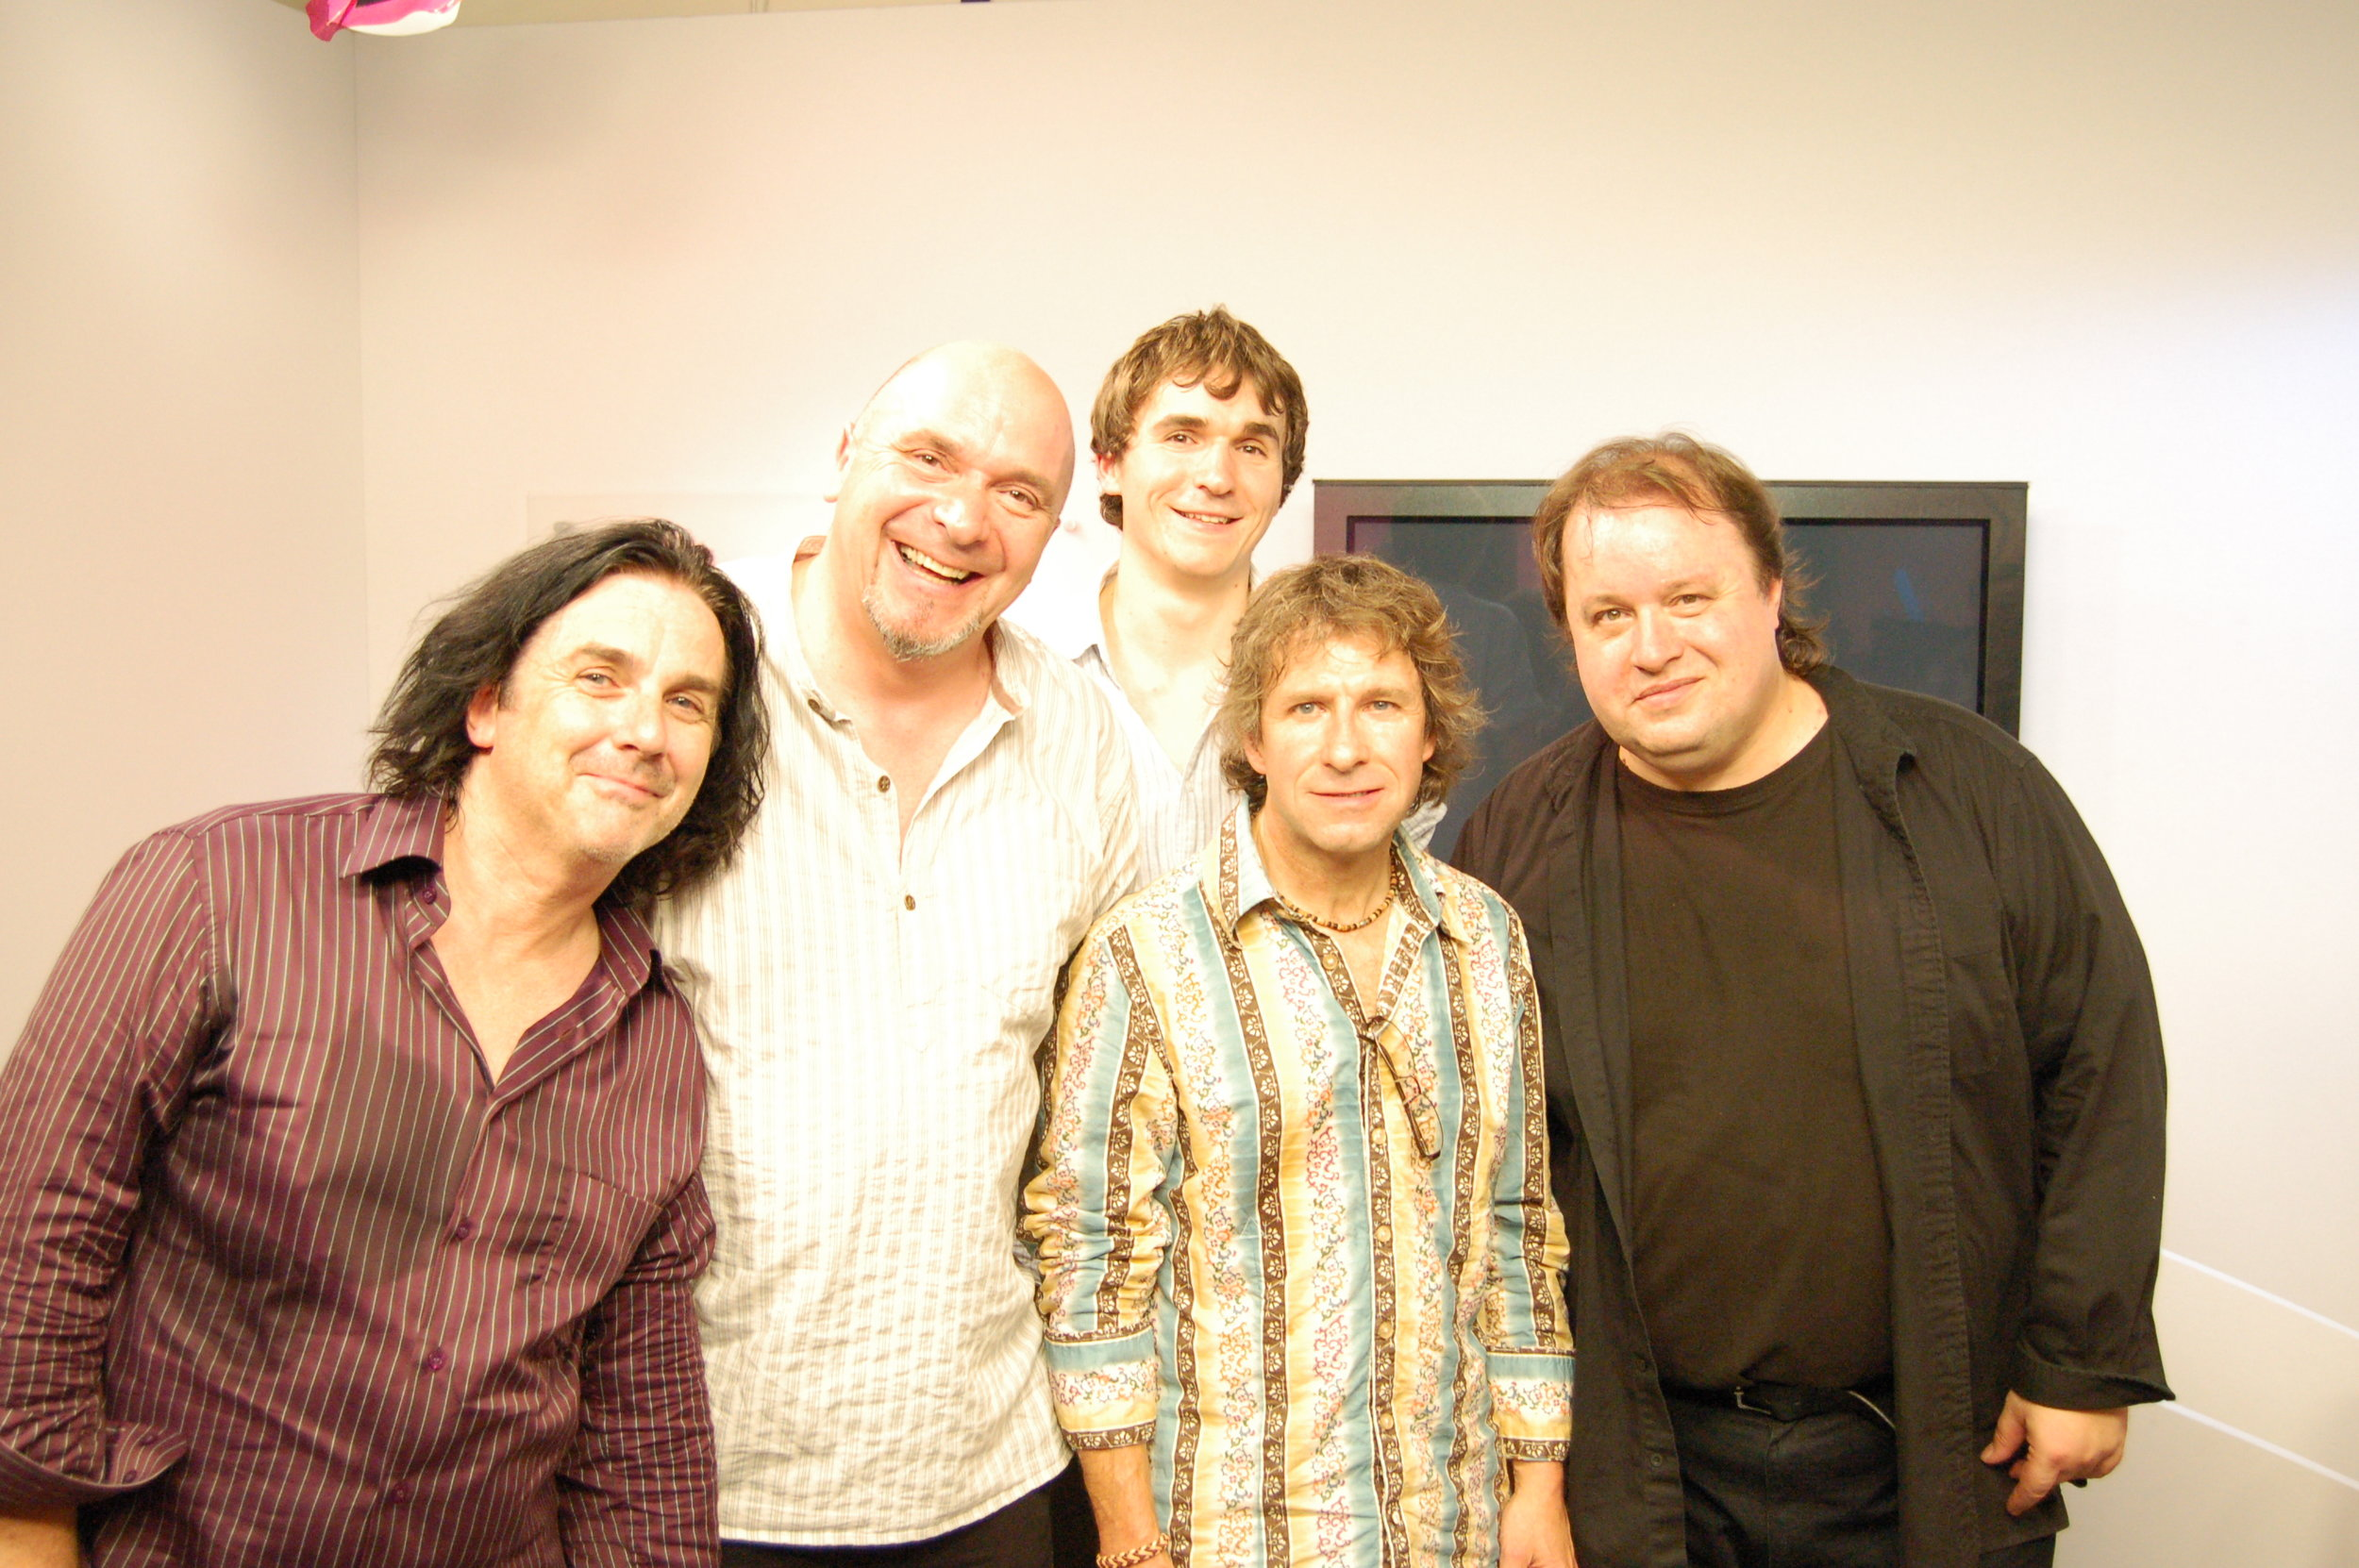 nick--scott-with-marillion_5059128895_o.jpg